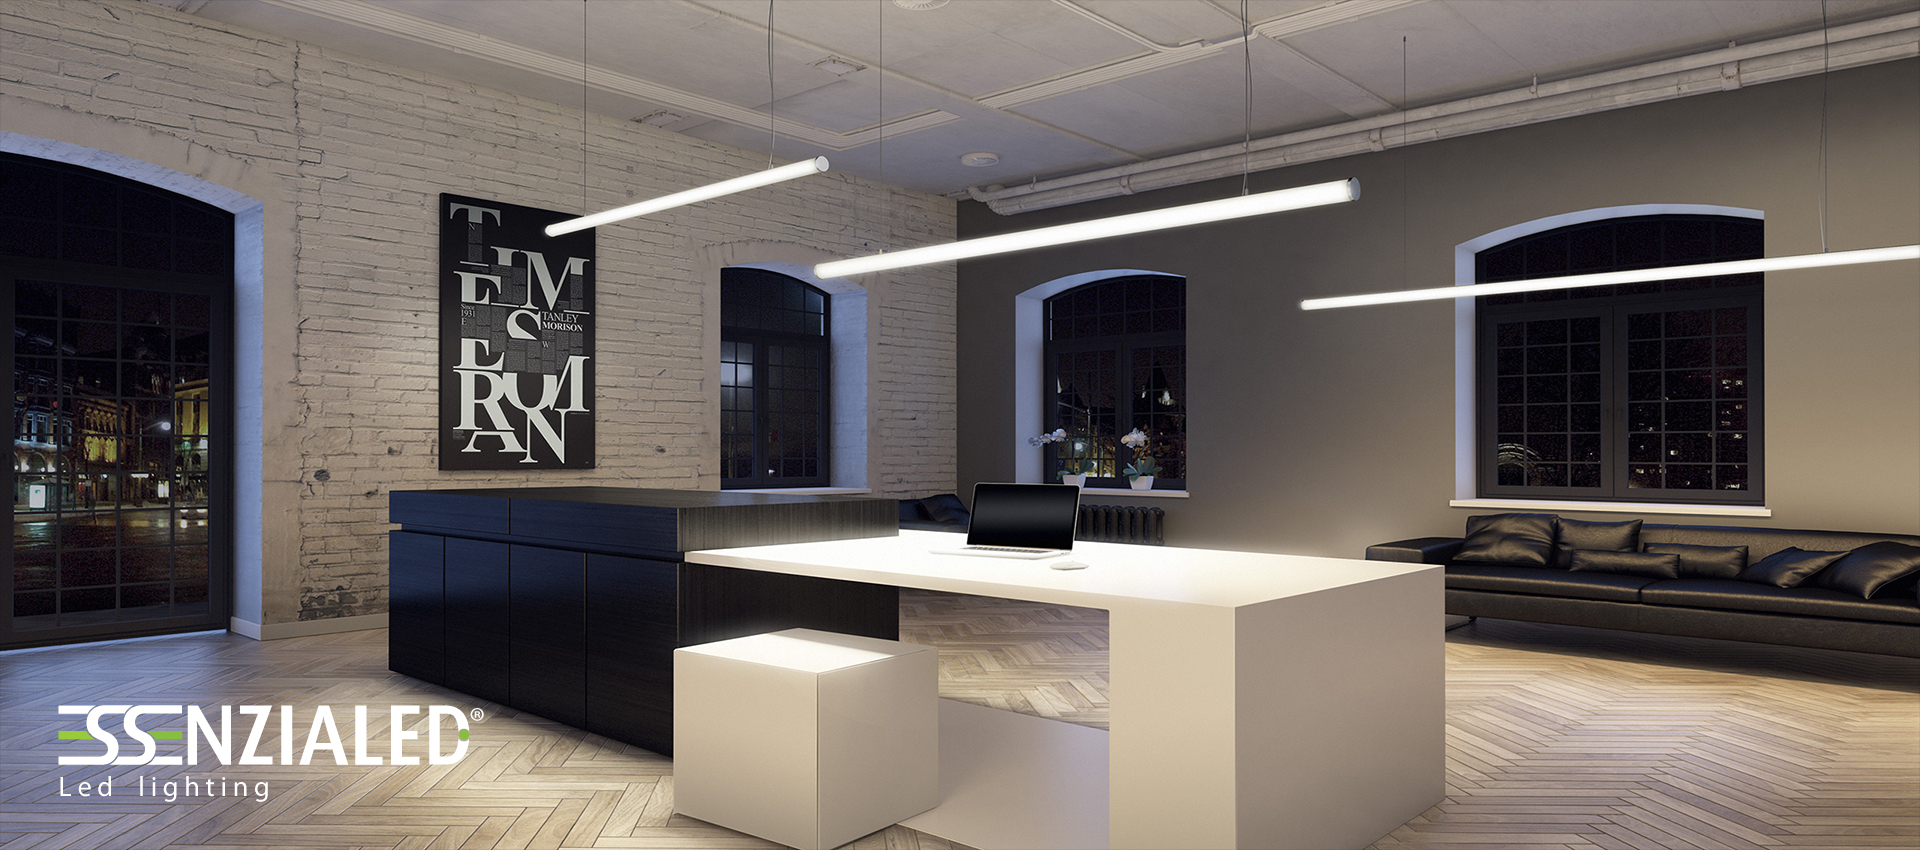 Luci Led Ufficio.Tube 6 0 Led Tube Suspended Is Perfect For Any Type Of